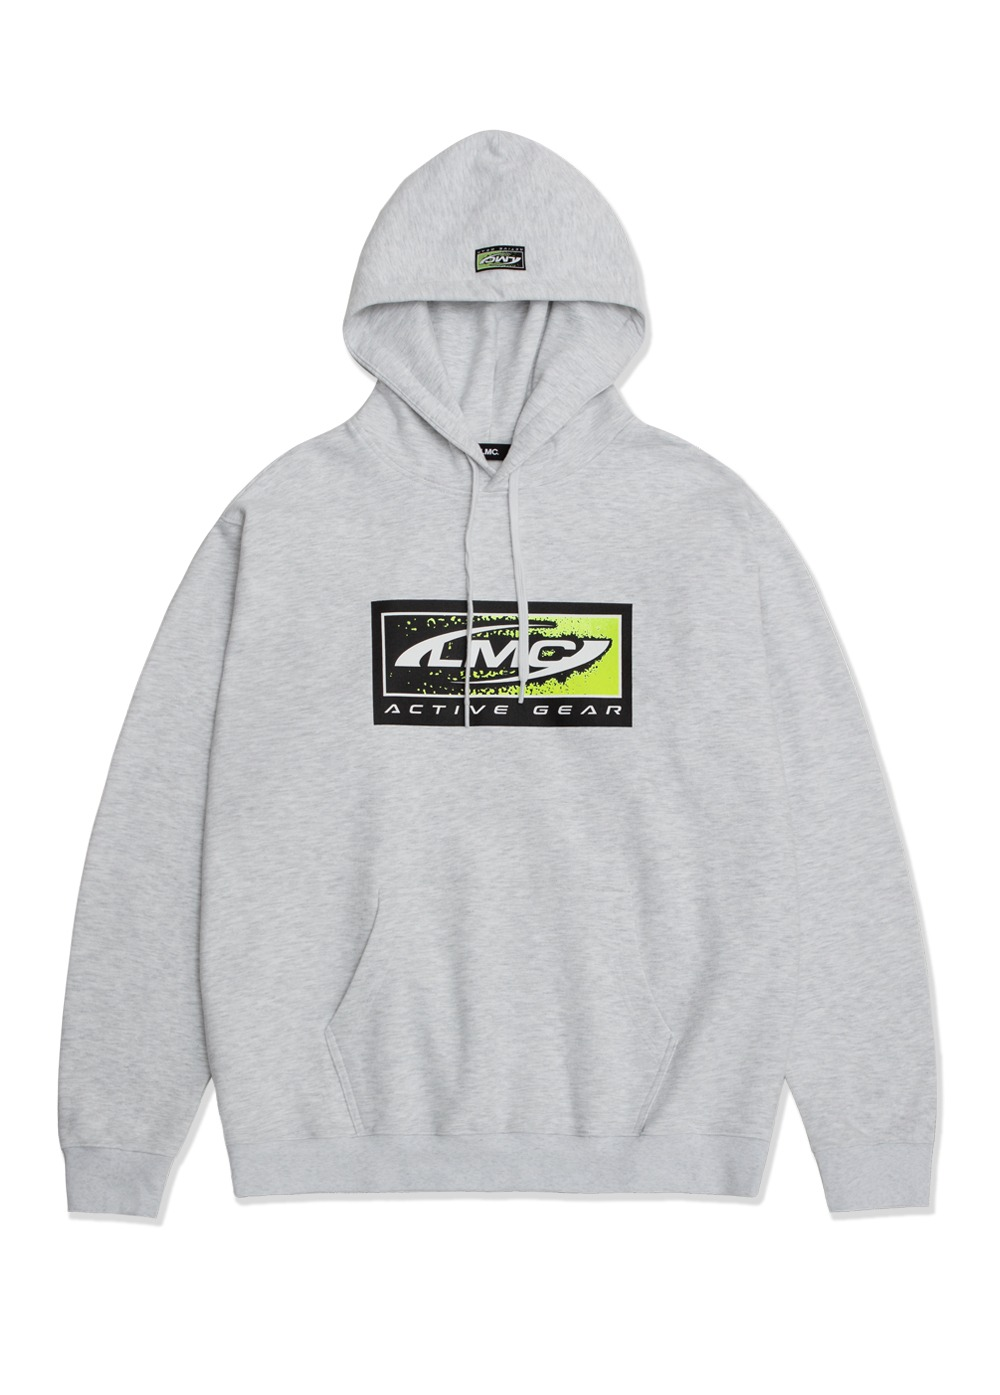 LMC ACTIVE GEAR HOODIE lt. heather gray